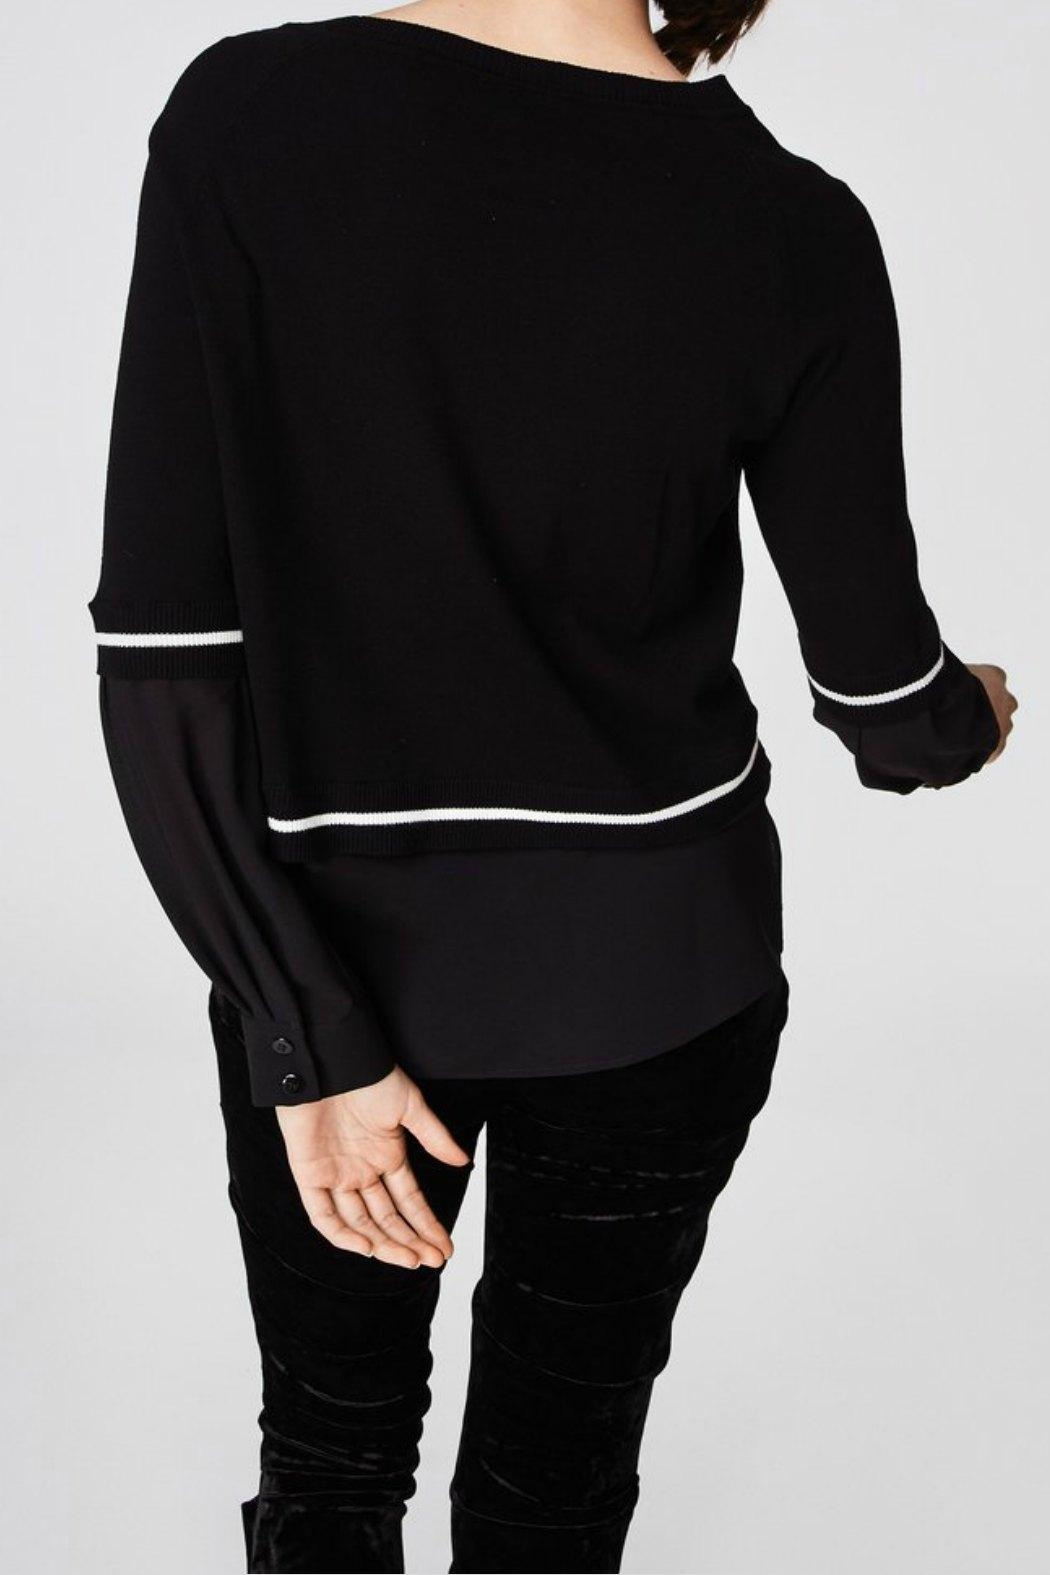 Nicole Miller Sweater Blouse Top - Side Cropped Image